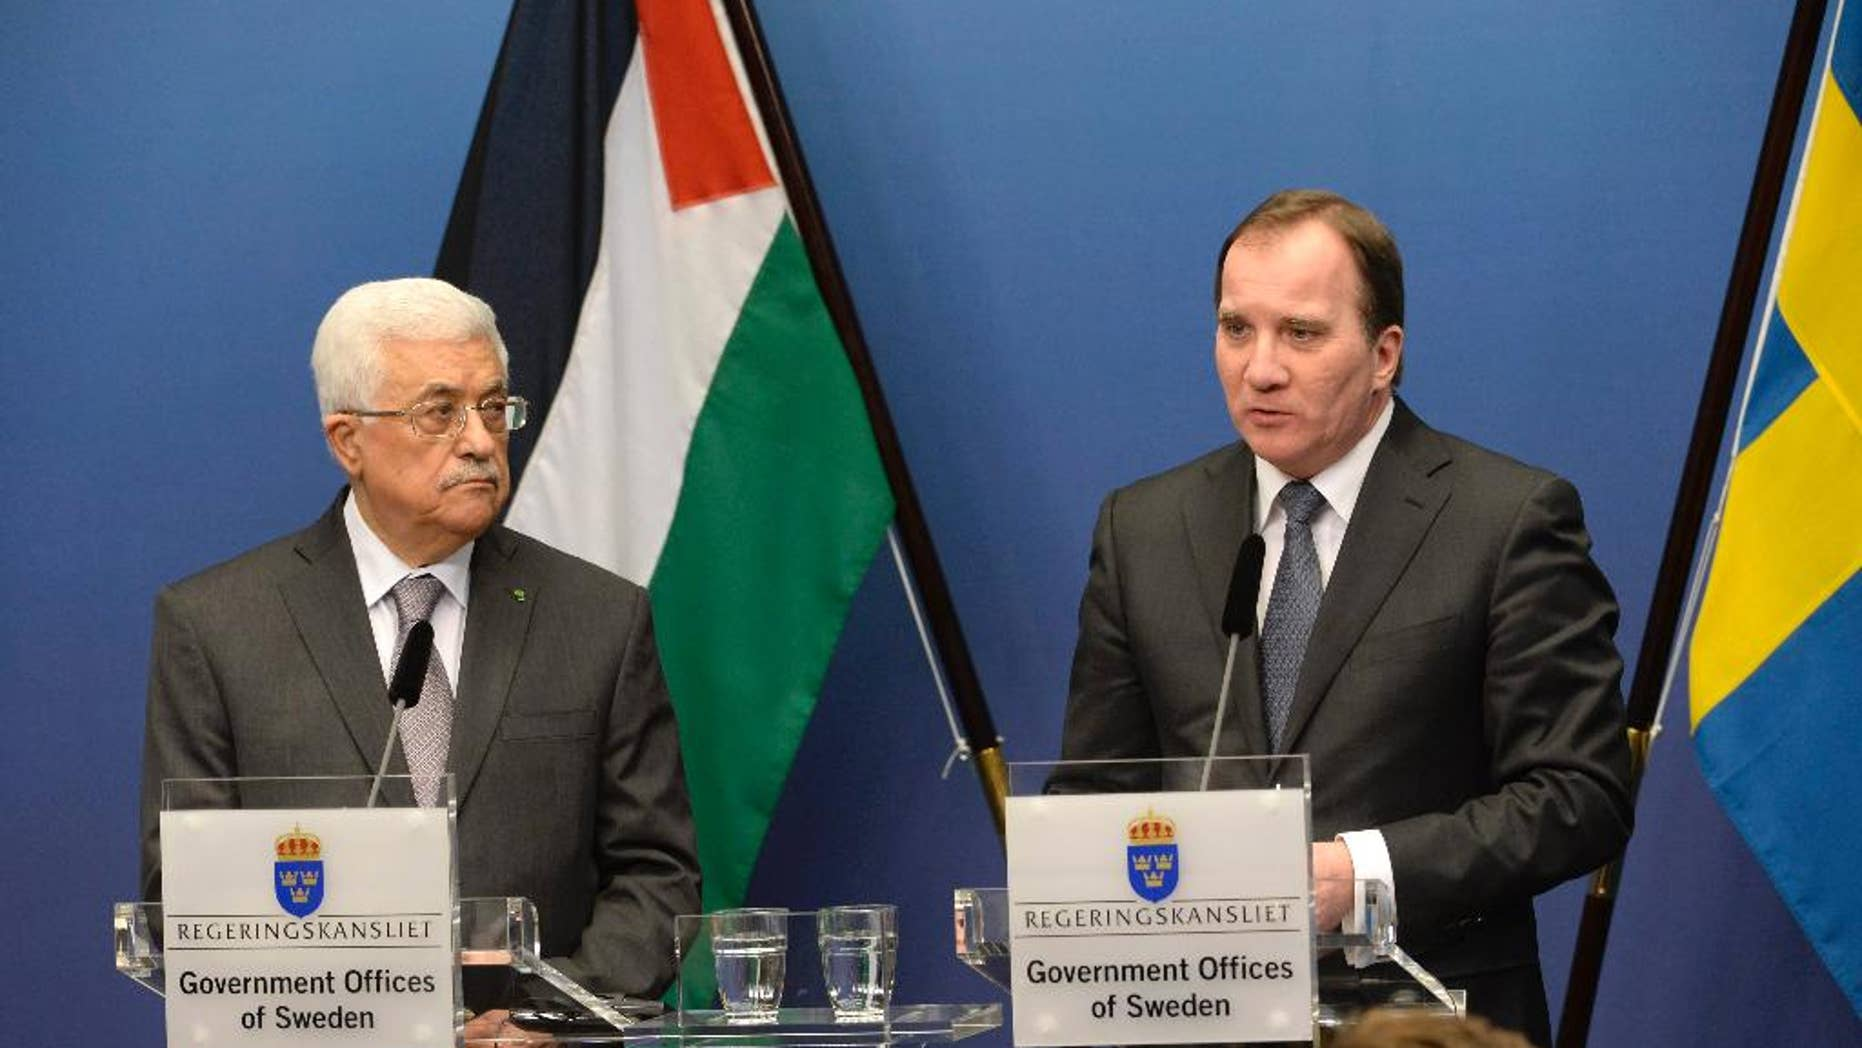 Palestinian President Mahmoud Abbas, left, and Sweden's Prime Minister Stefan Lofven during a press conference at the government headquarters Rosenbad in Stockholm, Sweden Tuesday, Feb. 10, 2015.  President Abbas is on a one day official visit to Sweden. (AP Photo/TT/ Jonas Ekstromer ) SWEDEN OUT